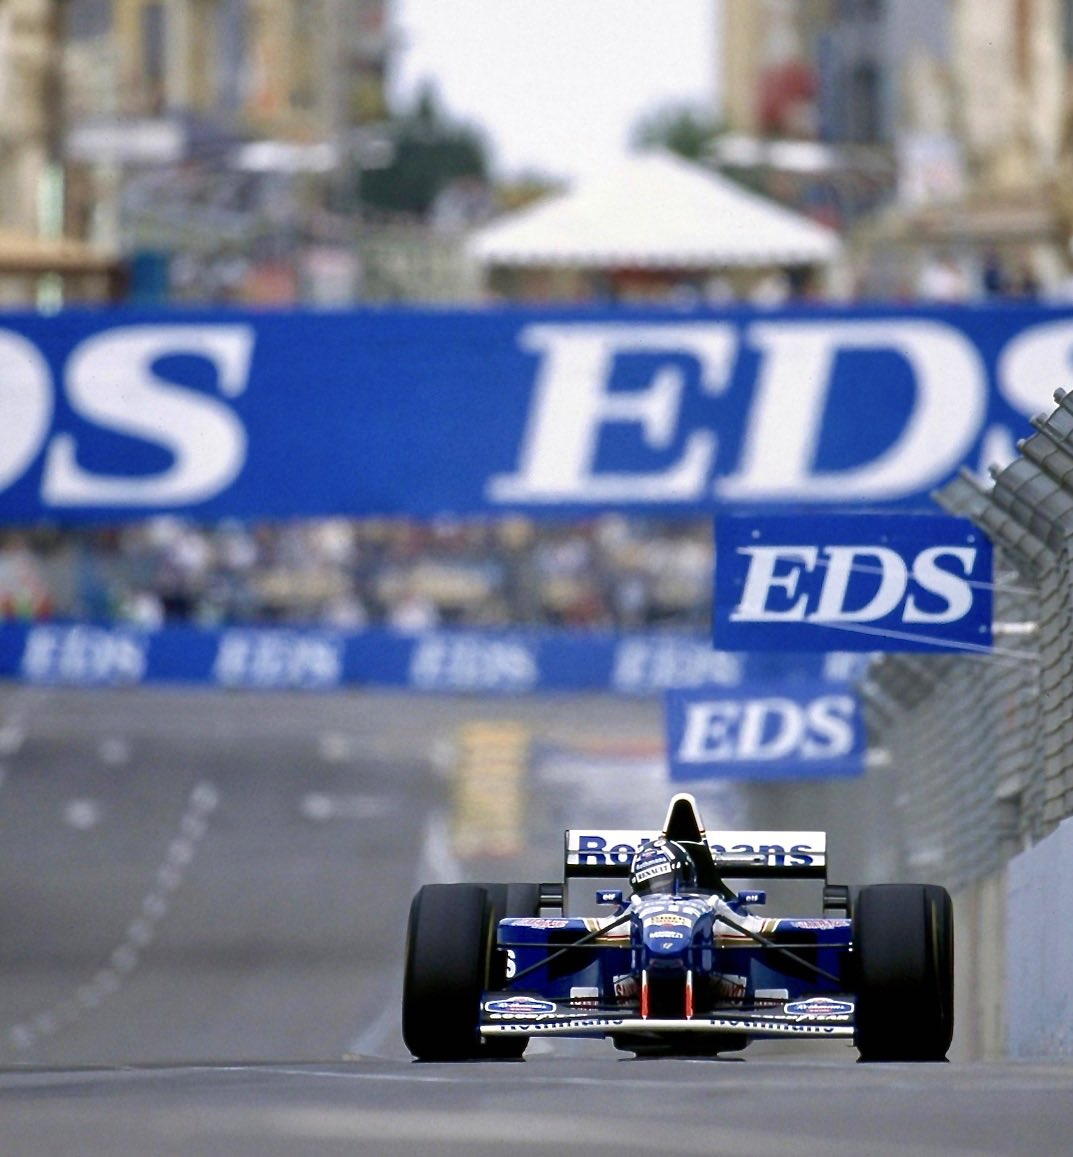 Britain's Damon Hill celebrates his 60th birthday today. He raced at the Adelaide Grand Prix for Williams from 1993 to 1995, finishing third in 1993, retiring following the championship-deciding tangle with Michael Schumacher in 1994 and winning in 1995 (📷). #F1 #Adelaide https://t.co/FjzecGnfYJ